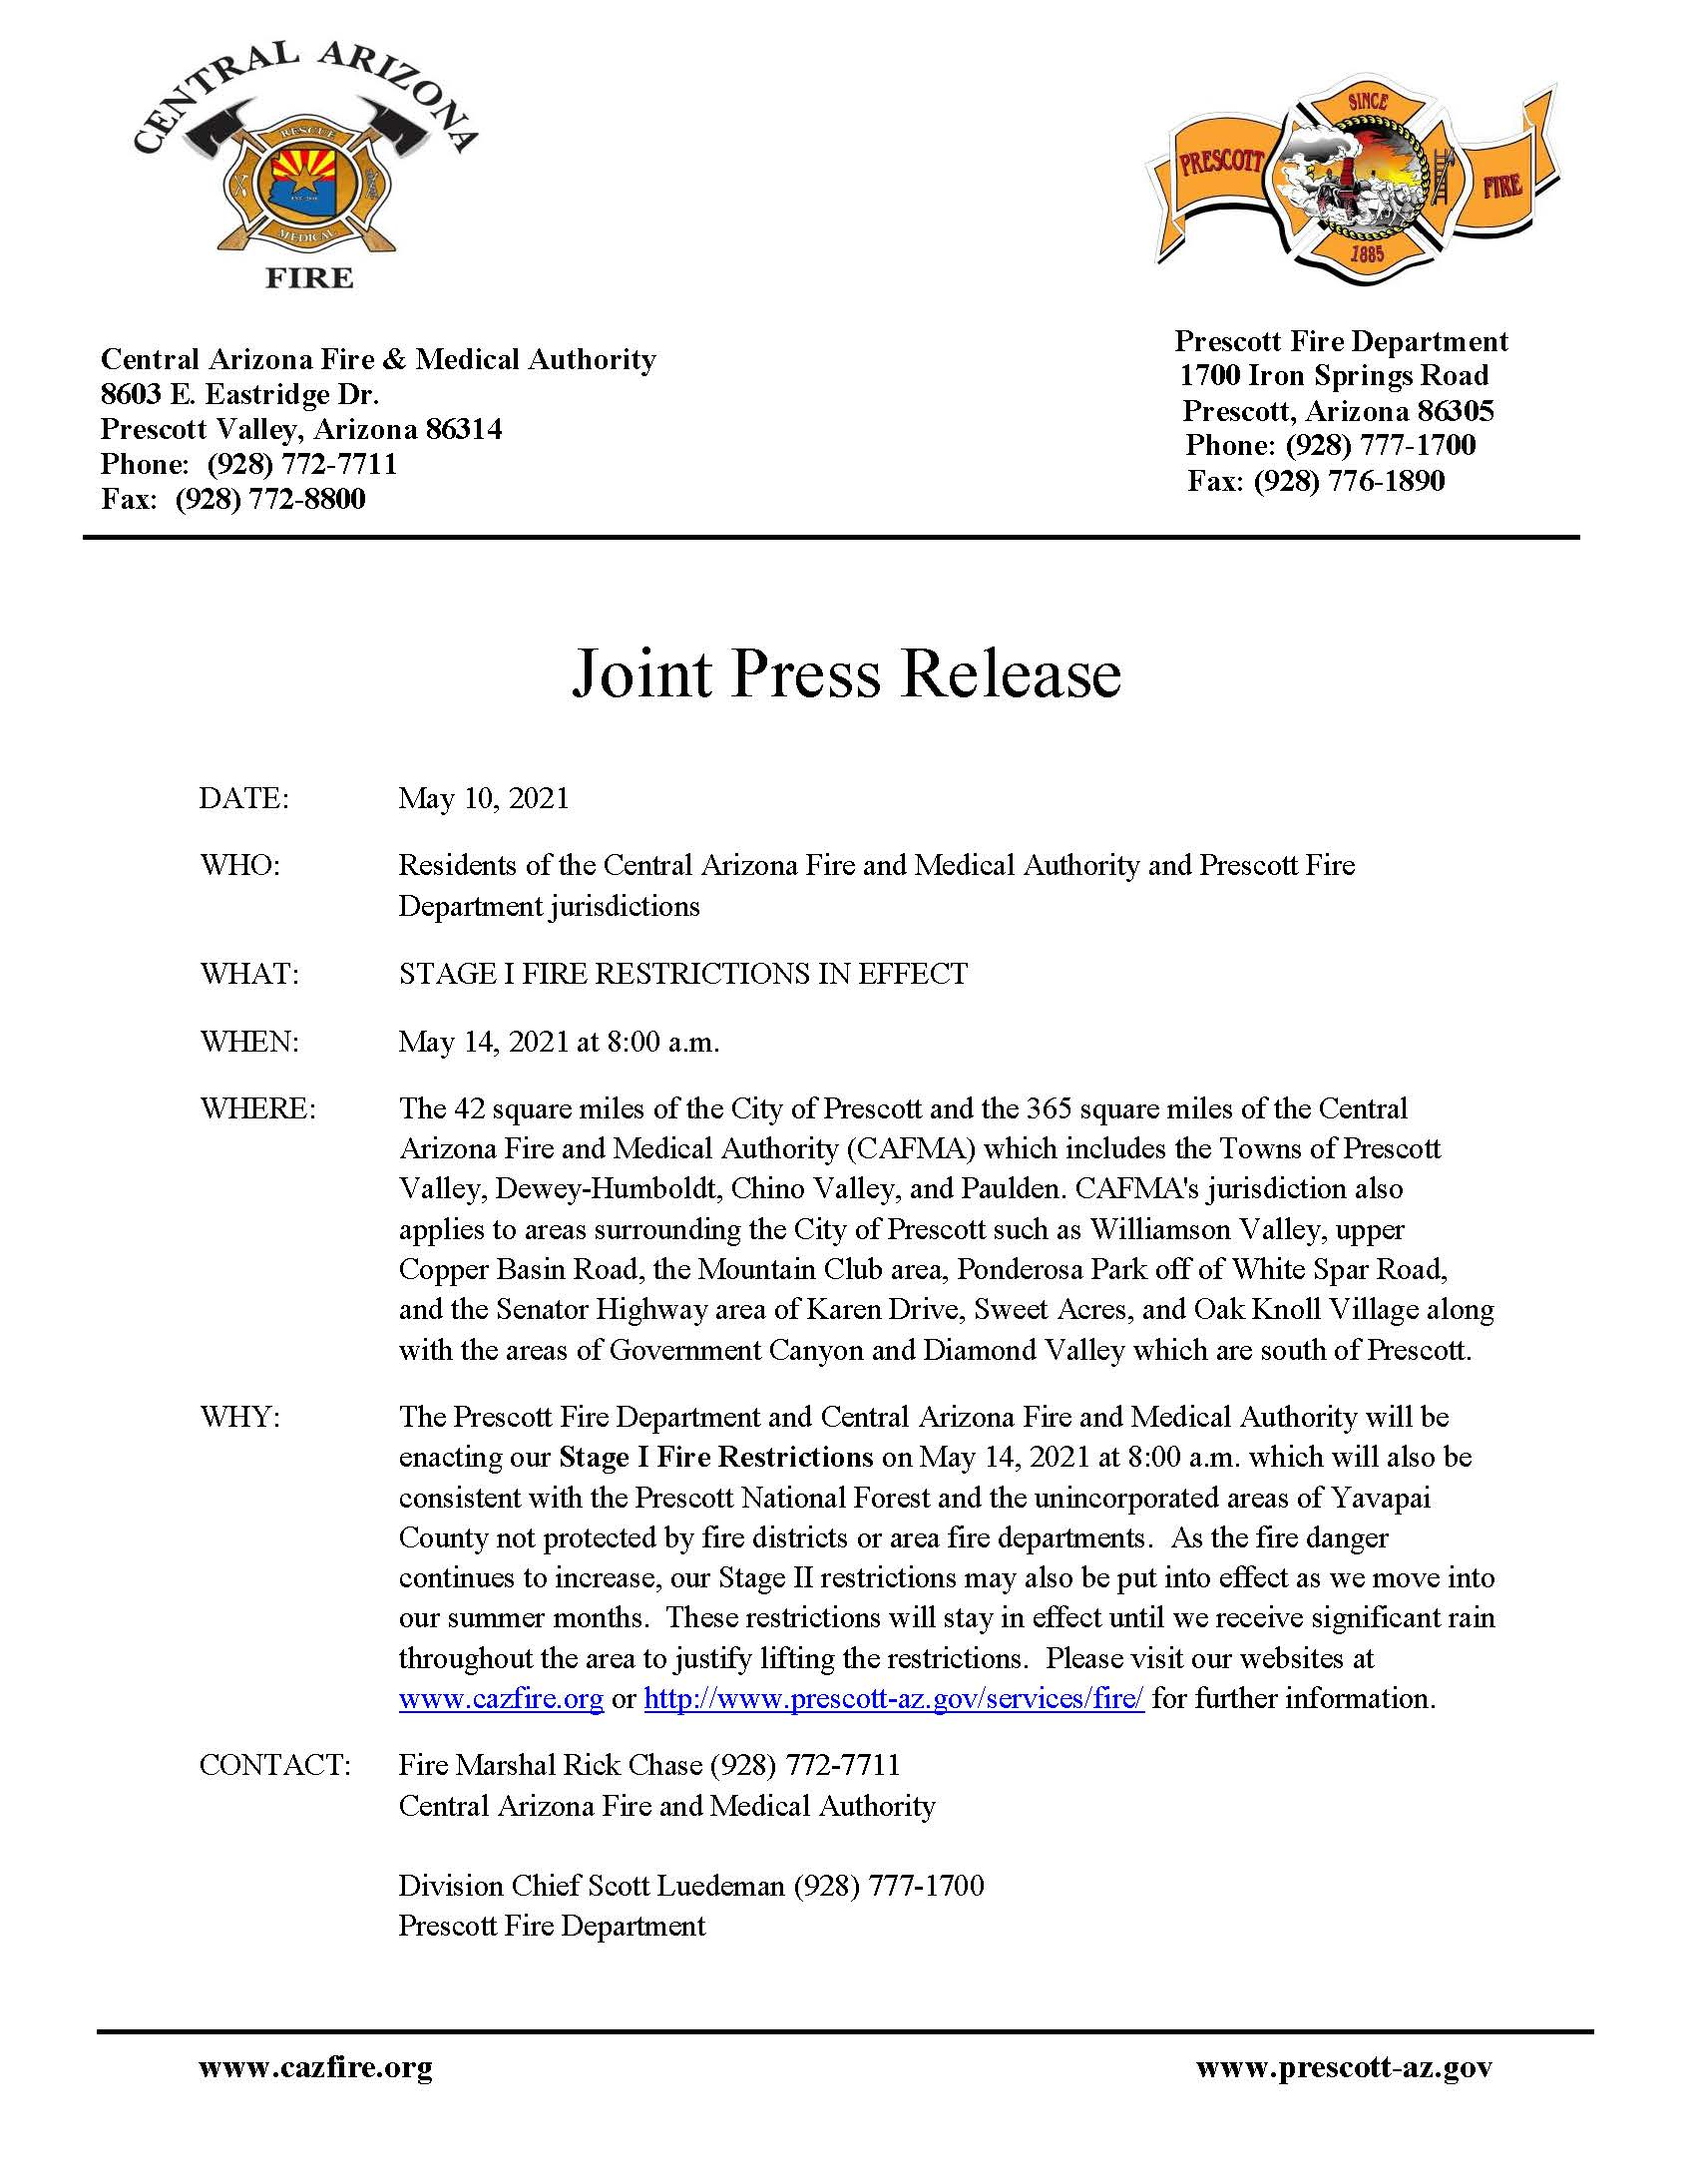 Joint Press Release stage 1 Fire Restrictions 2021 (1)